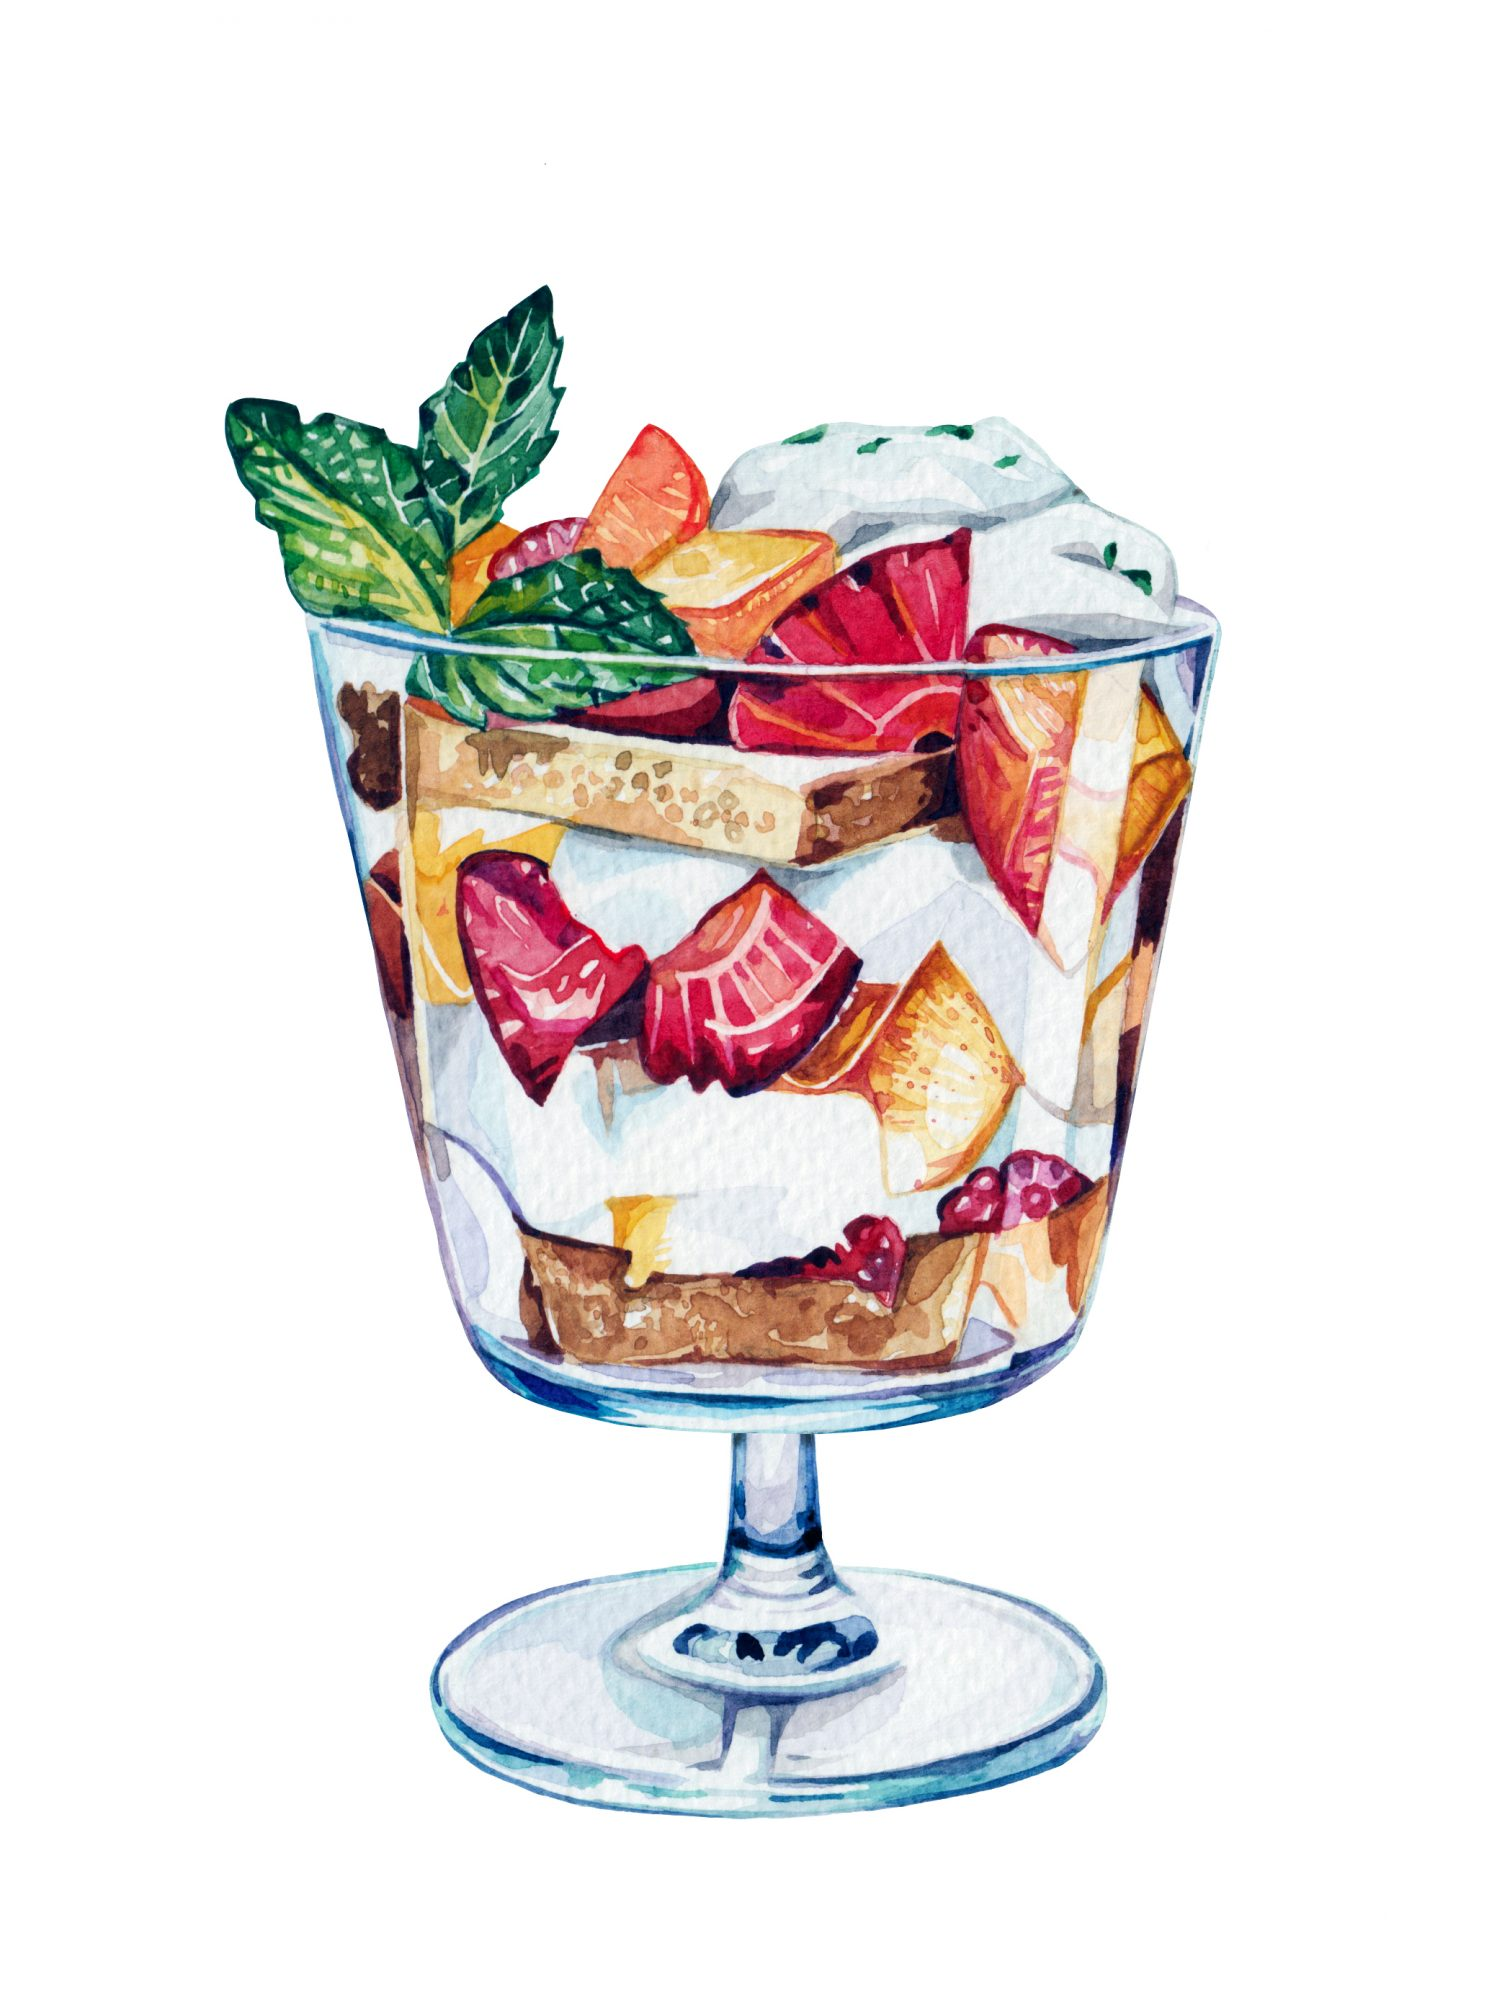 Strawberry-Peach Parfaits